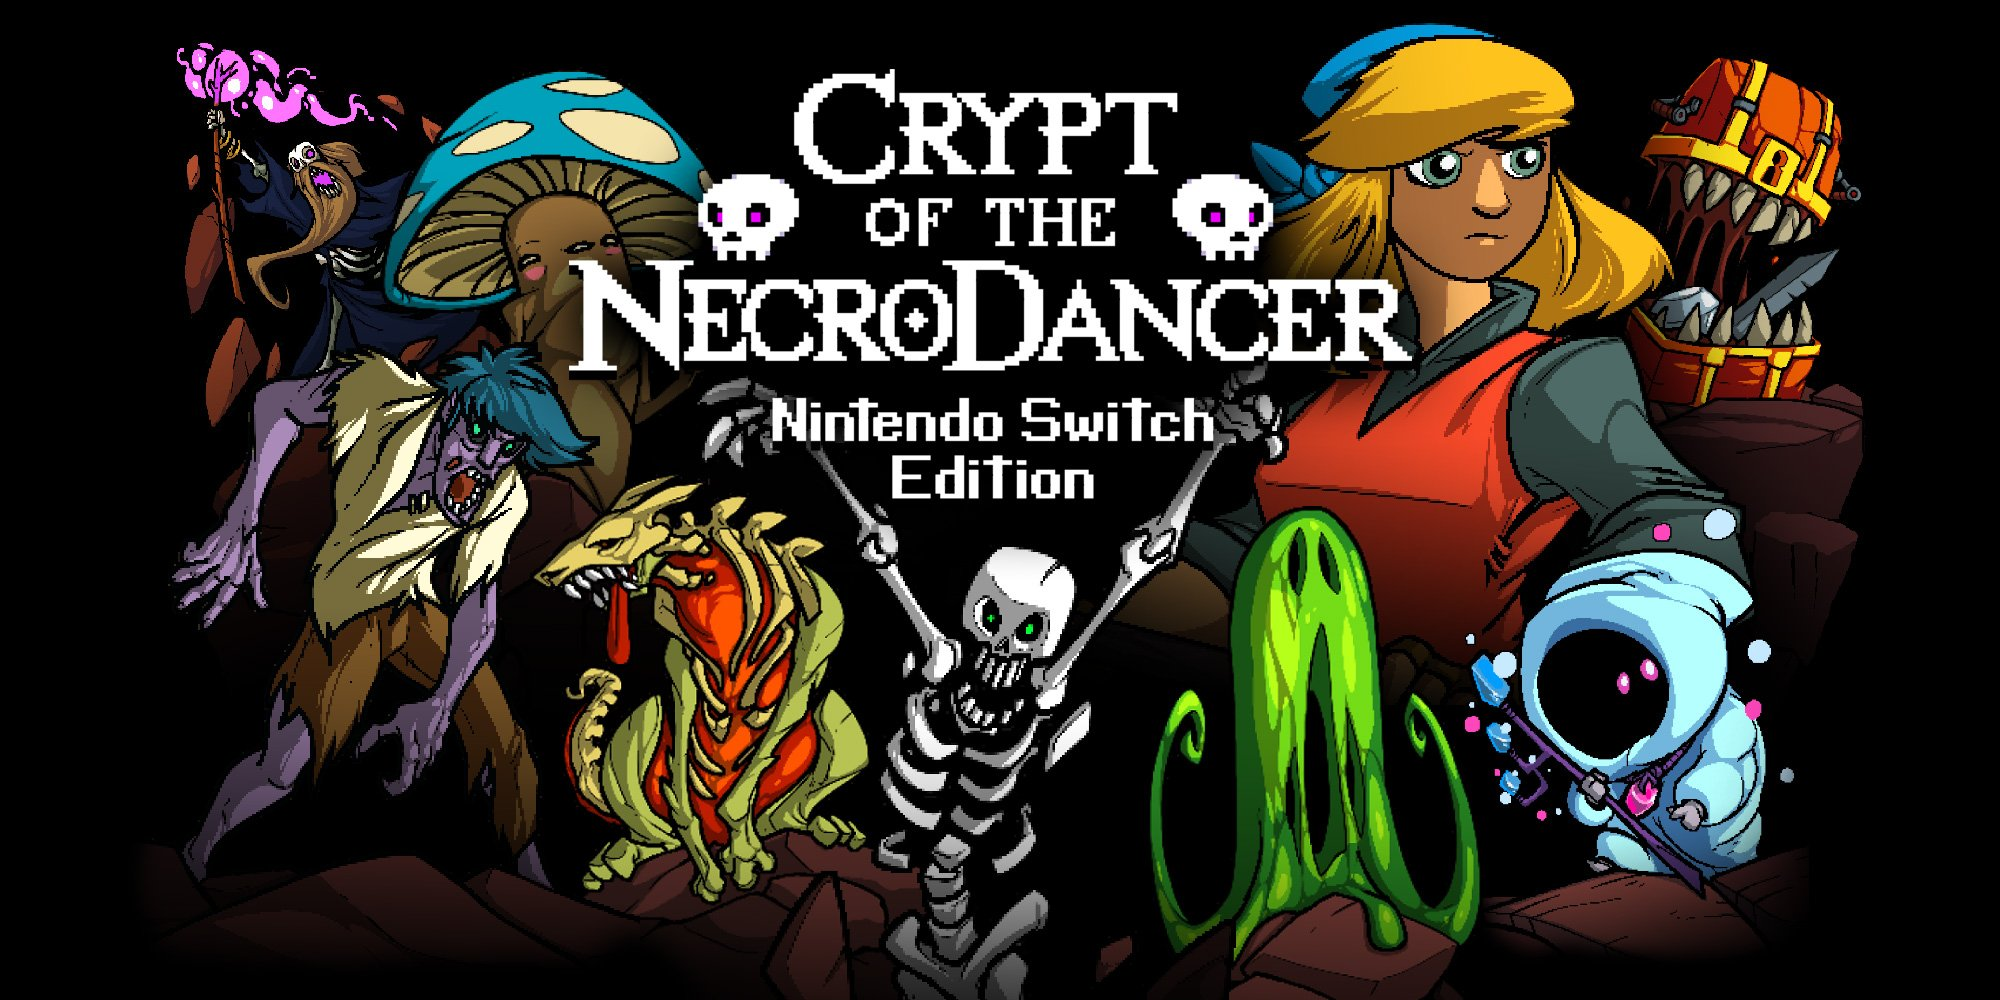 Crypt of the NecroDancer is on sale for both Nintendo Switch and Steam.